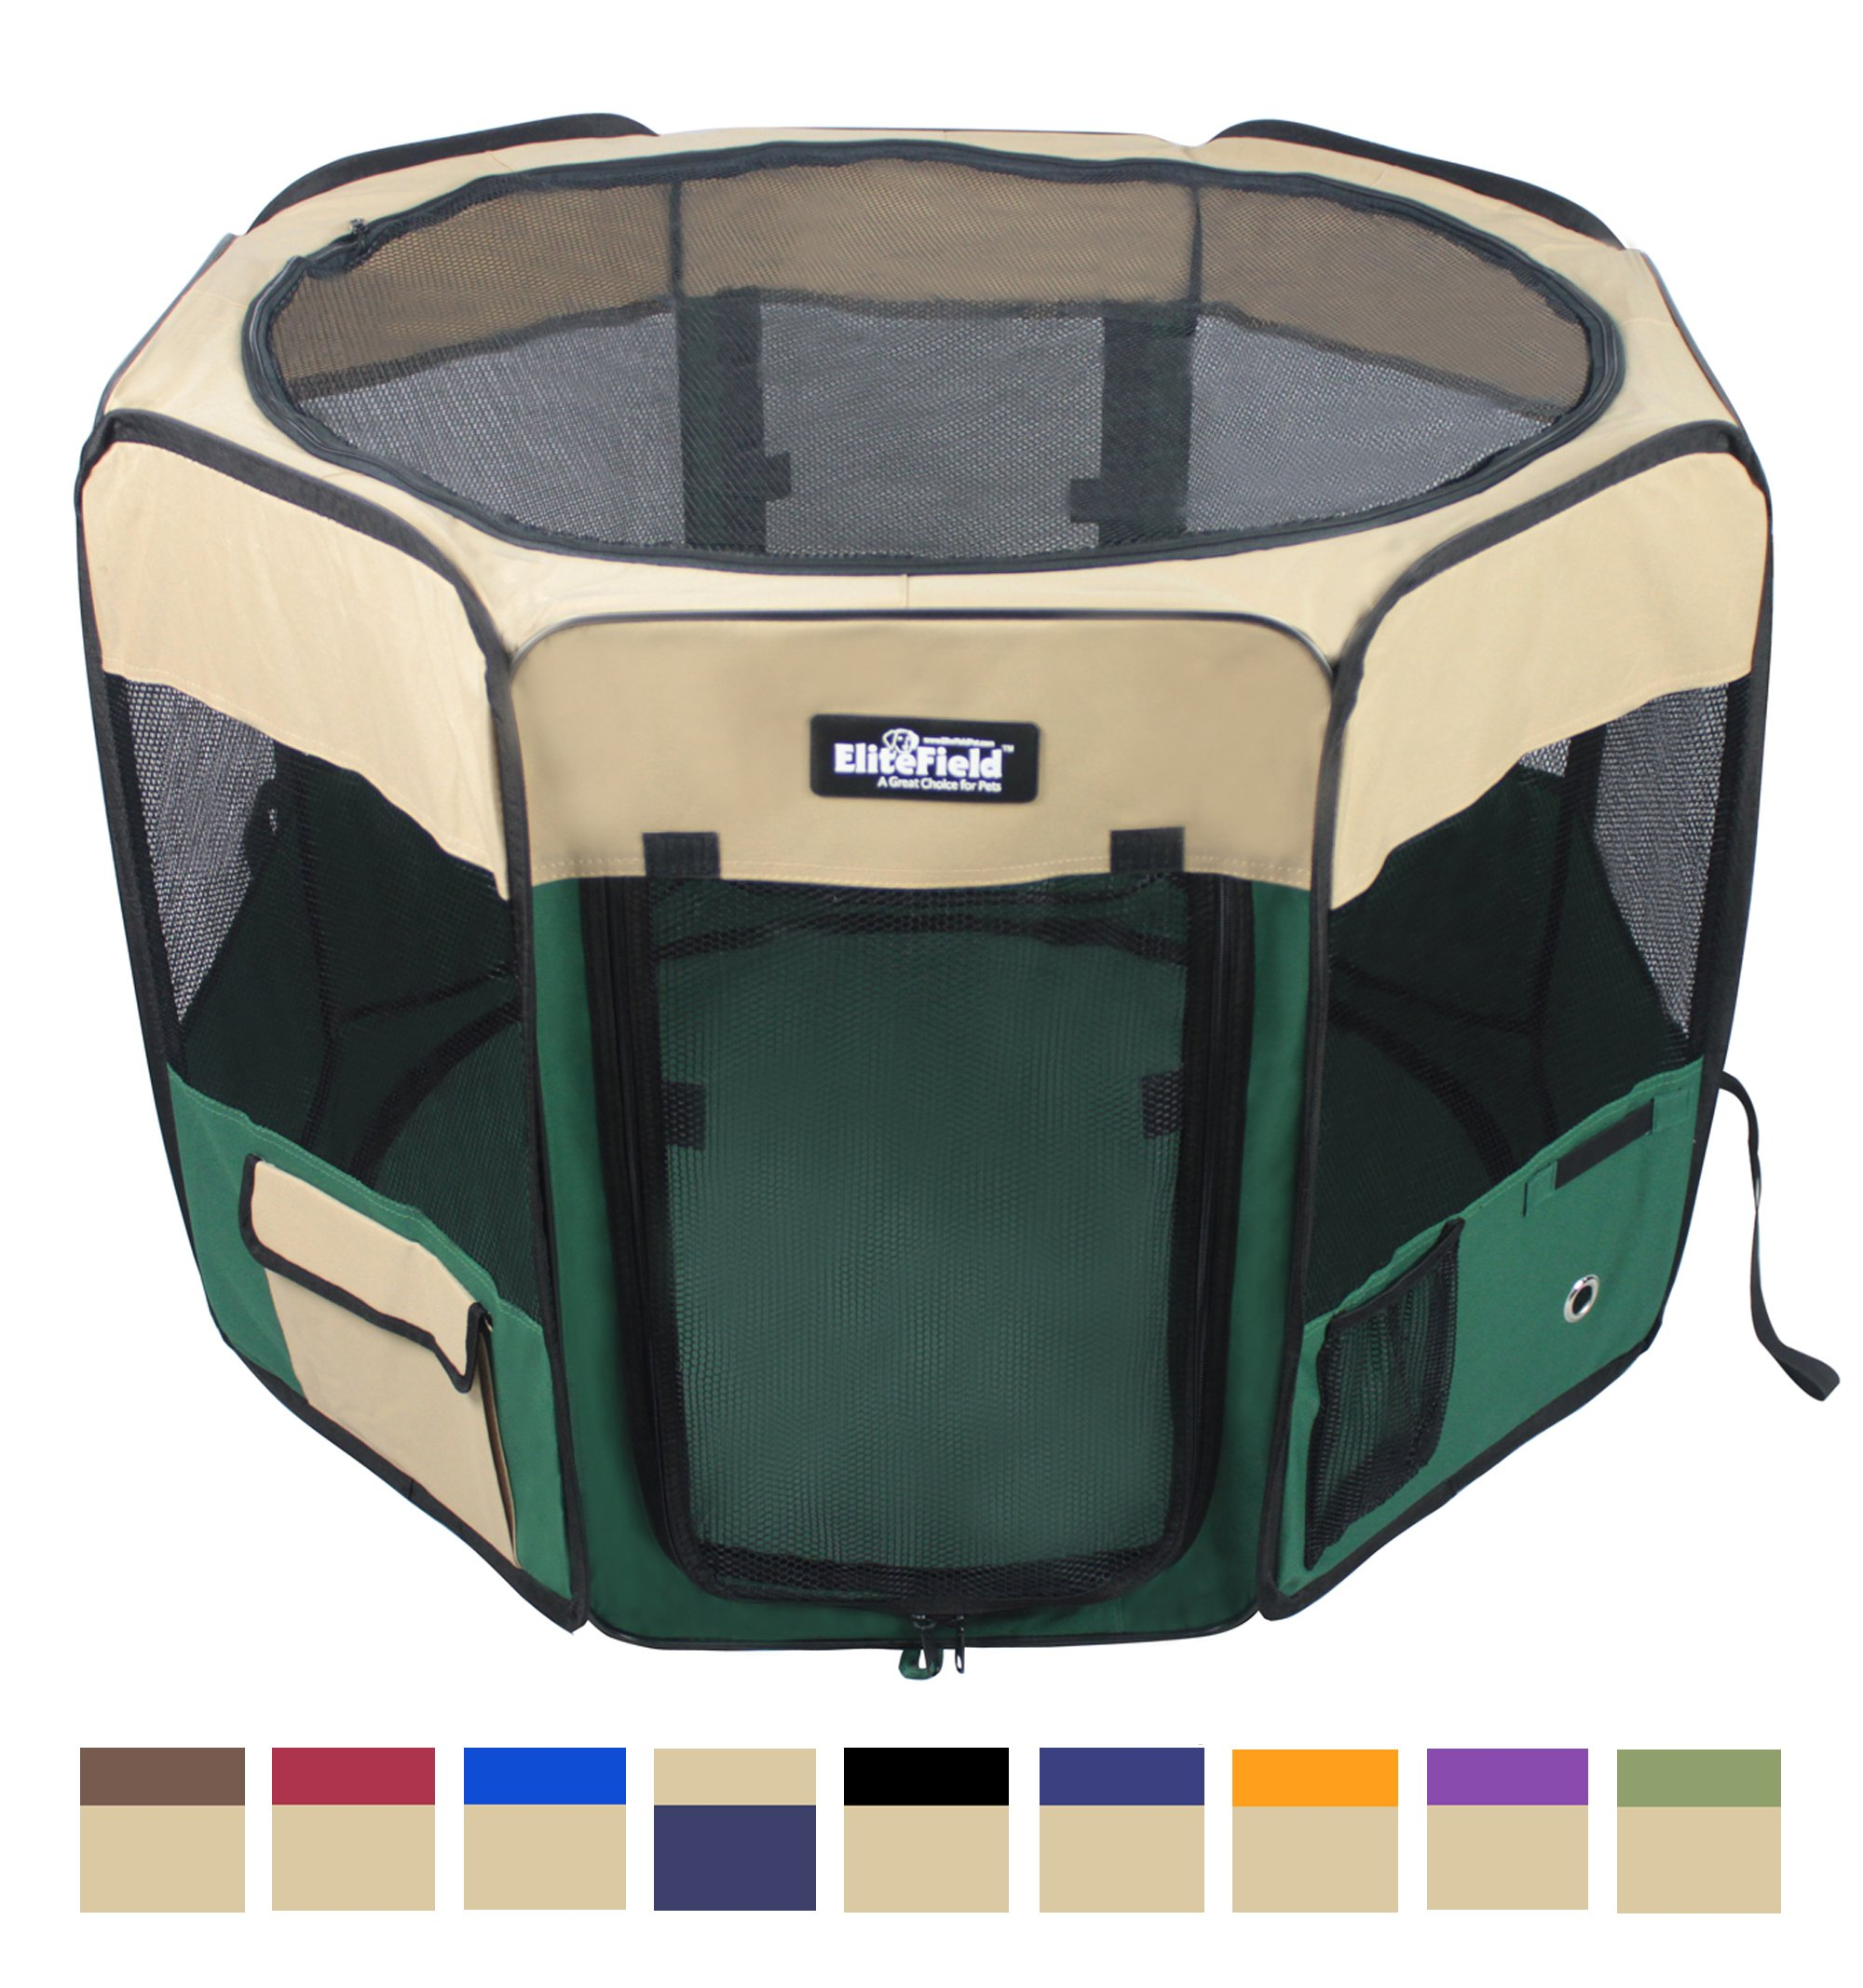 EliteField 2-Door Soft Pet Playpen, Exercise Pen, Multiple Sizes and Colors Available for Dogs, Cats and Other Pets (48'' x 48'' x 32''H, Beige+Green) by EliteField